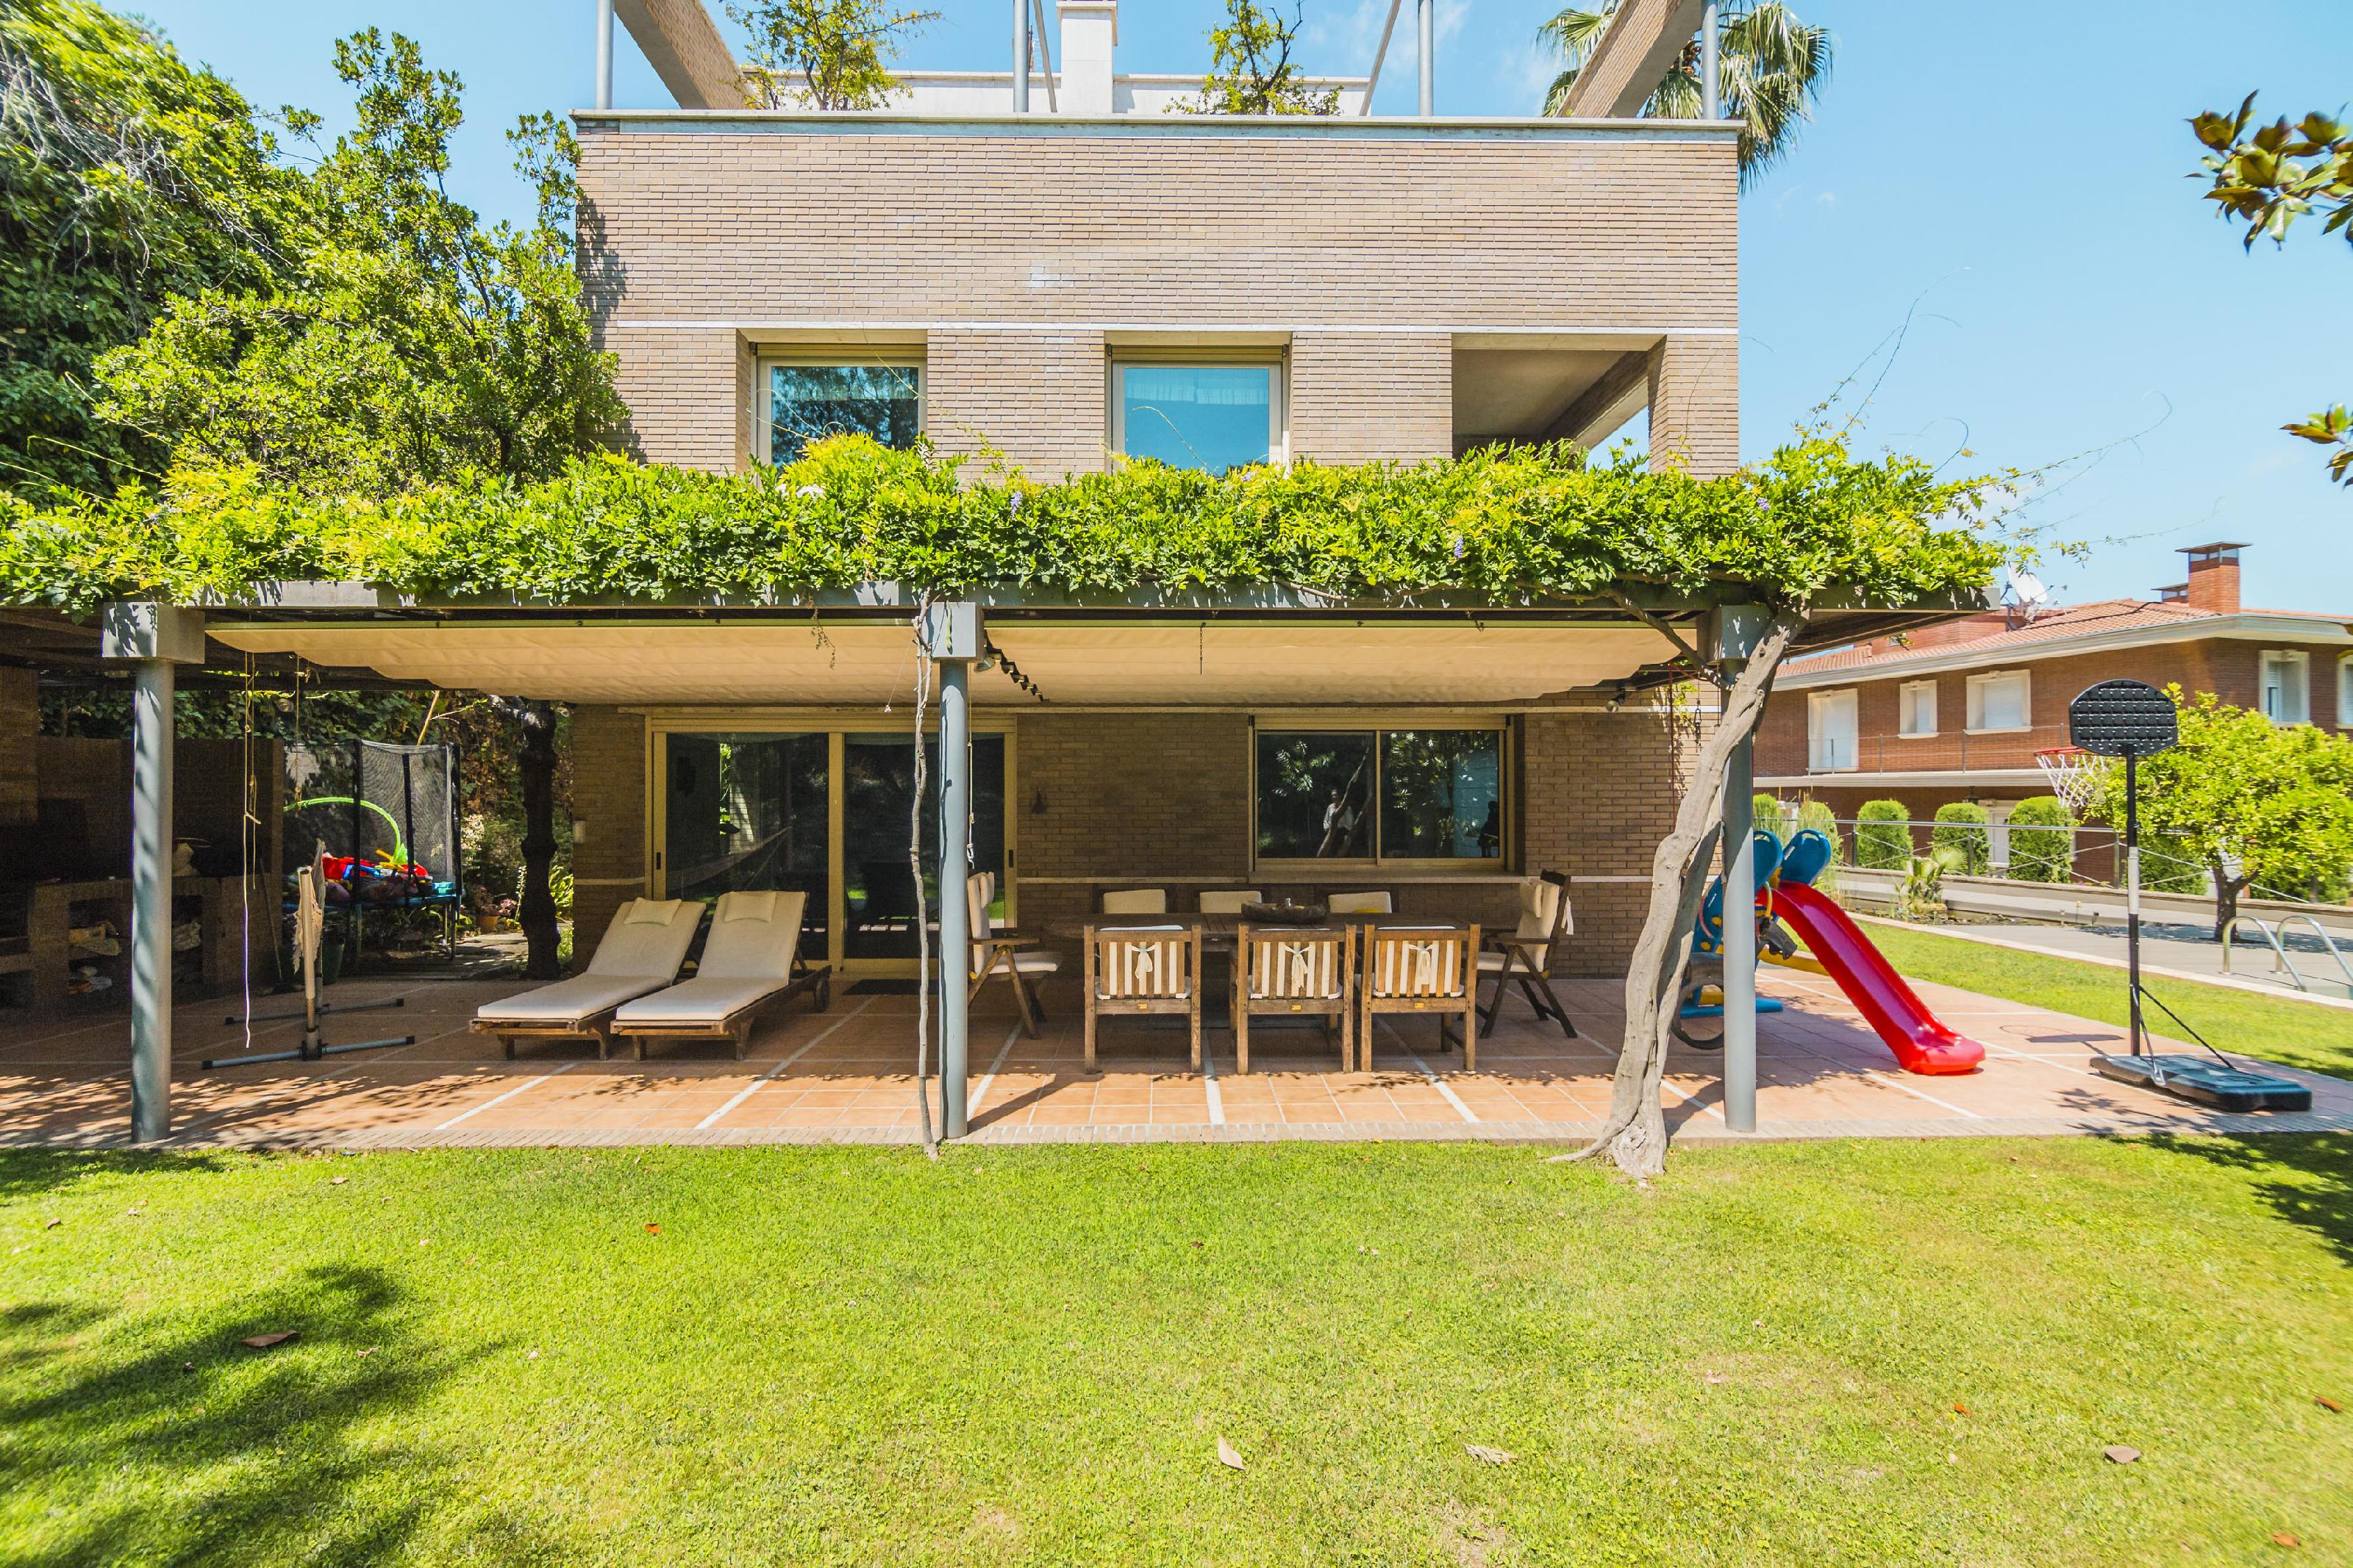 226231 House for sale in Les Corts, Pedralbes 30